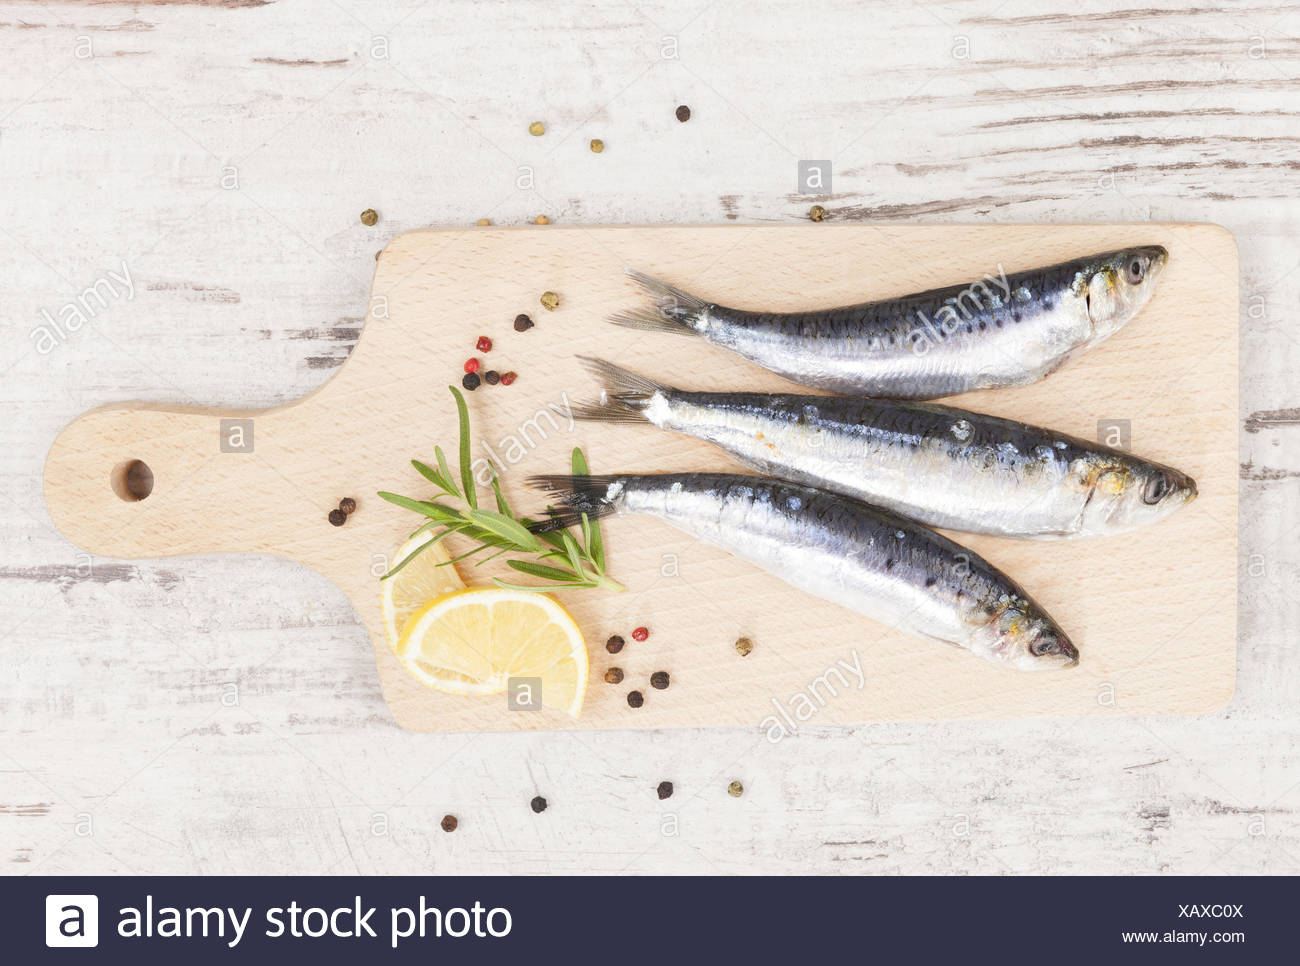 Delicious anchovies fish eating. Stock Photo